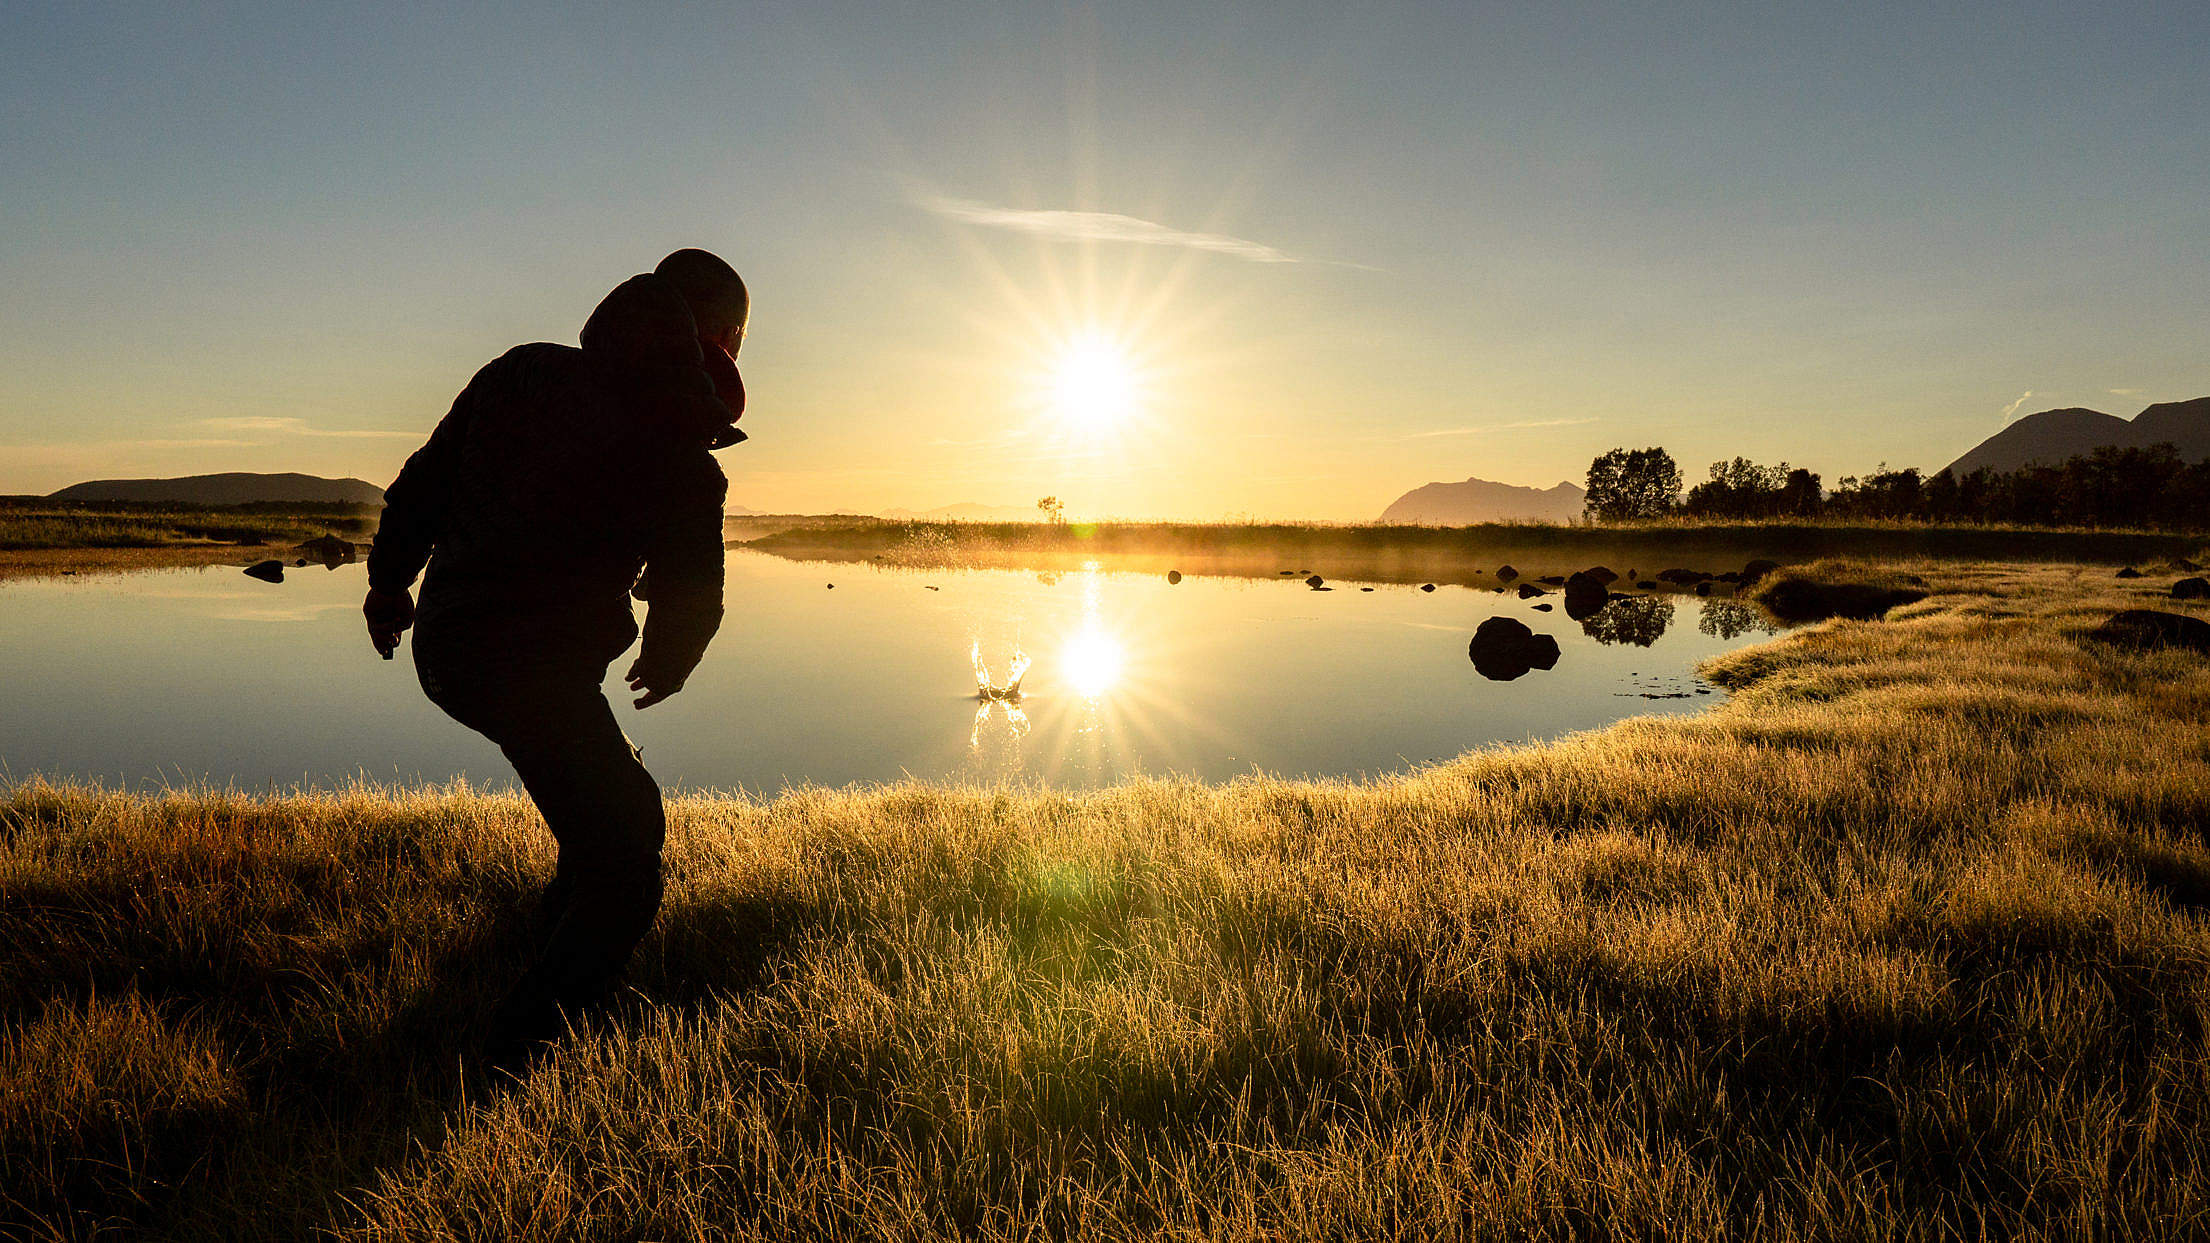 Man Throwing a Stone into a Calm Lake During Beautiful Sunrise Free Stock Photo